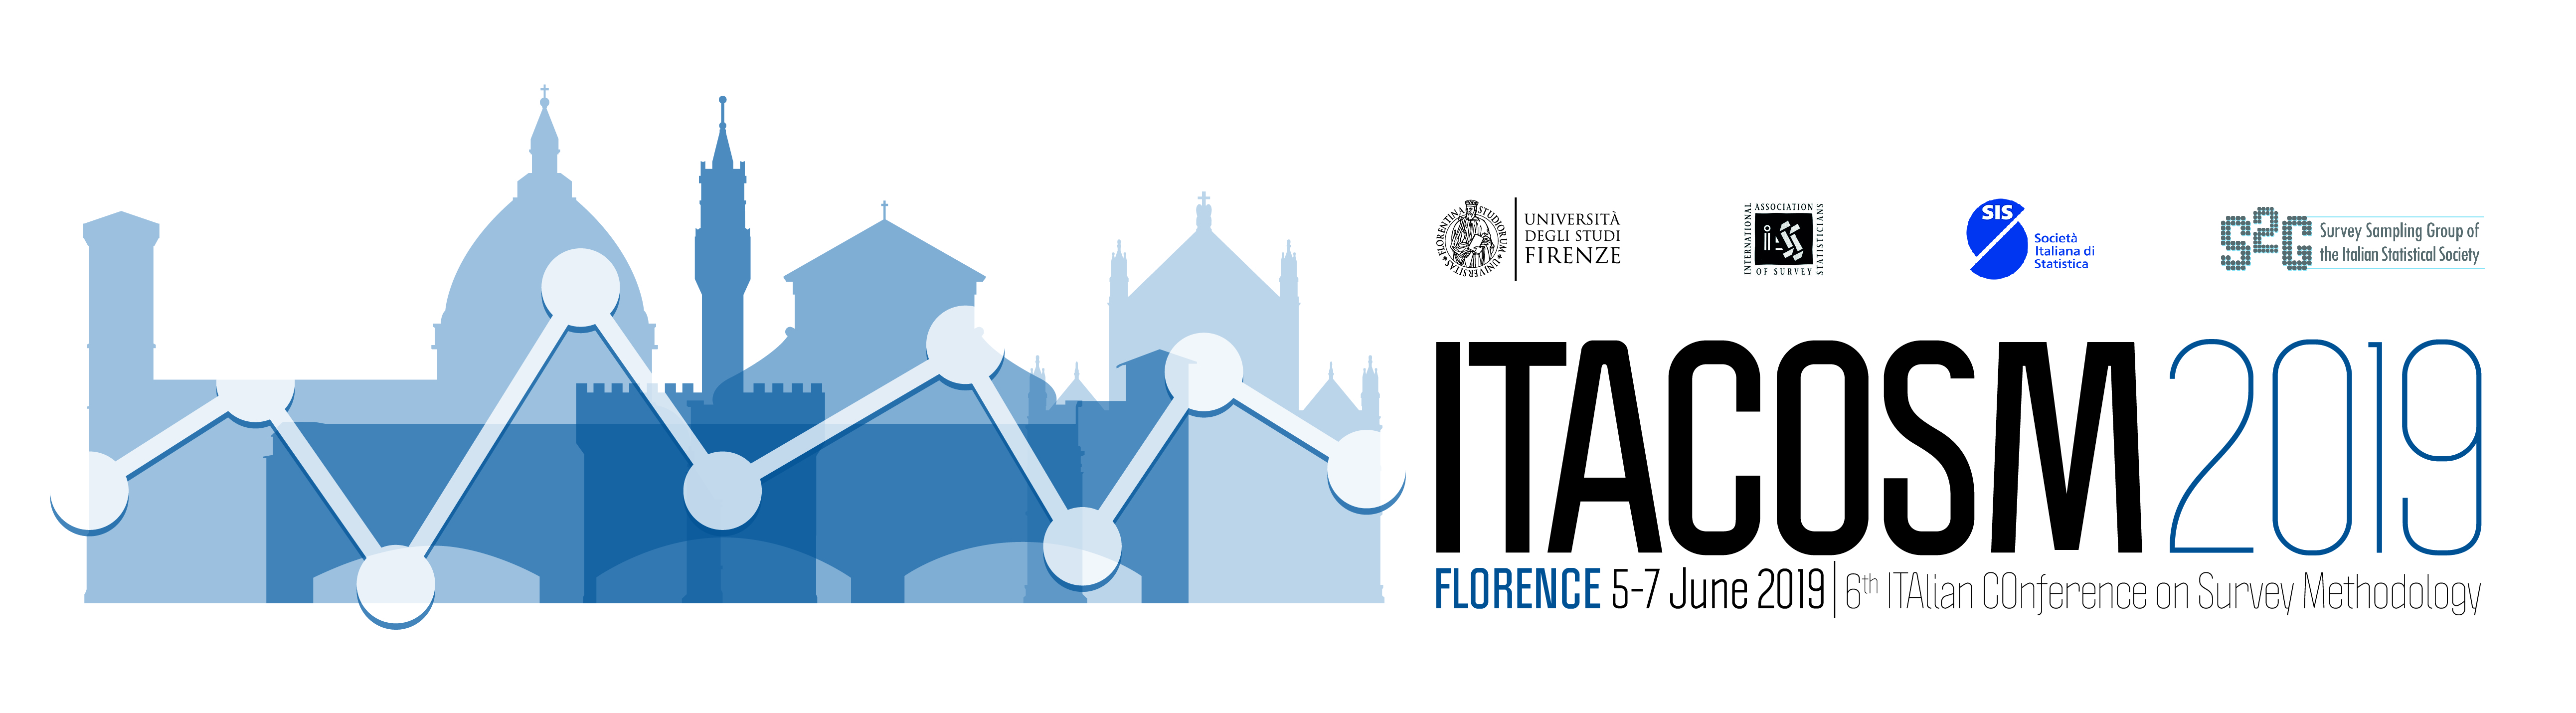 ITACOSM 2019 - Survey and Data Science